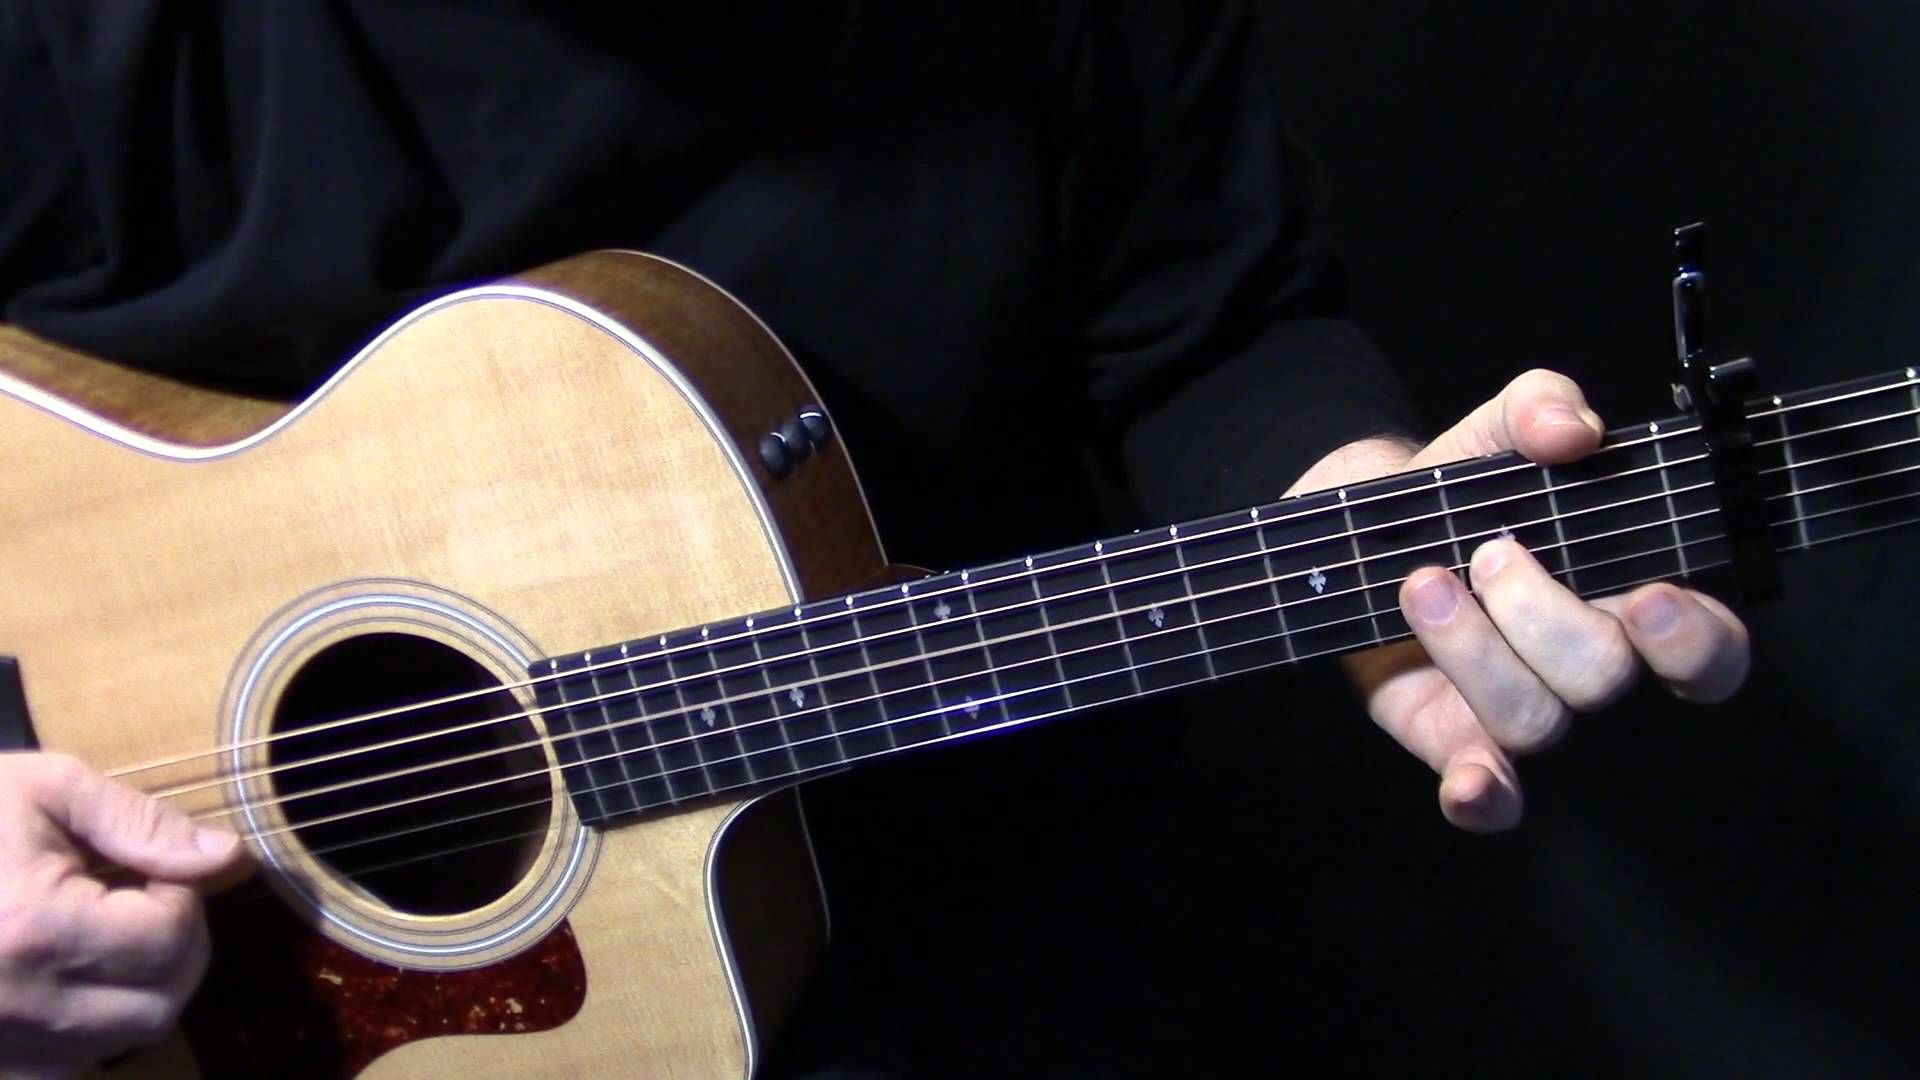 How To Play Landslide Live Solo On Acoustic Guitar By Fleetwood